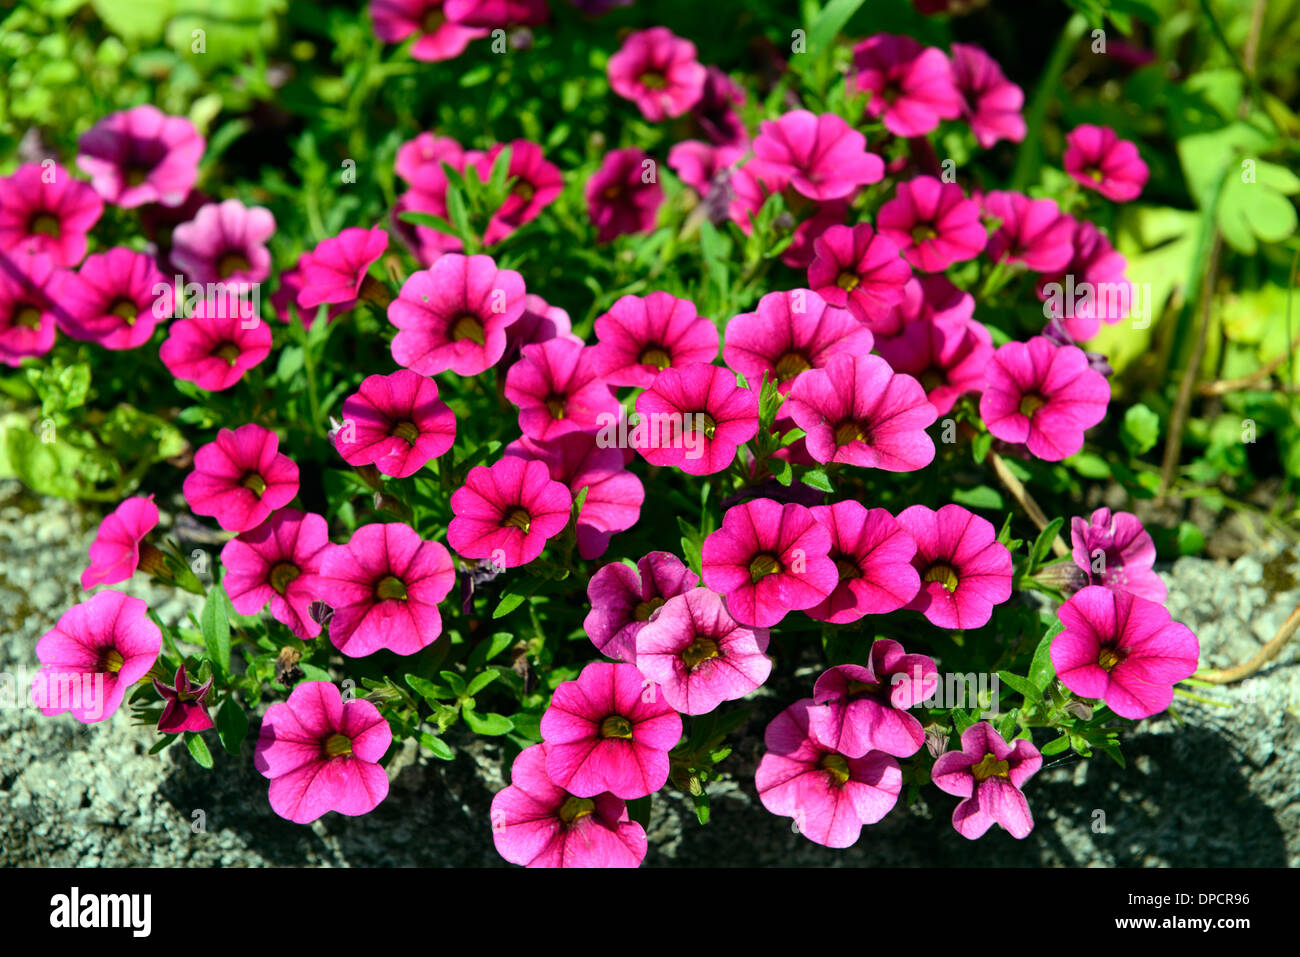 bacopa pink flowers flowering bed border bedding flower. Black Bedroom Furniture Sets. Home Design Ideas